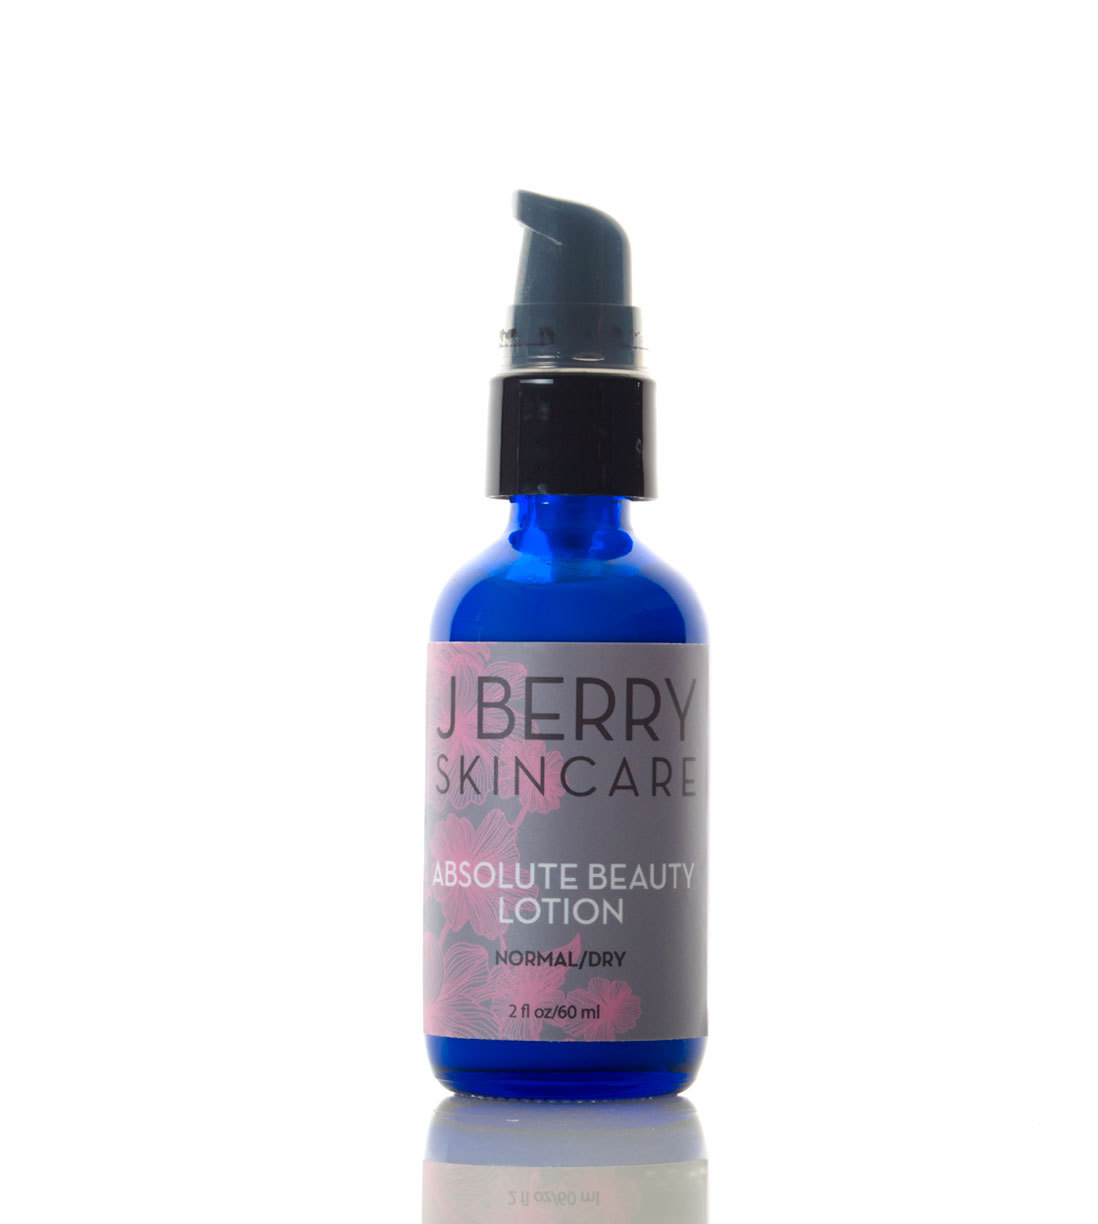 Absolute Beauty Lotion